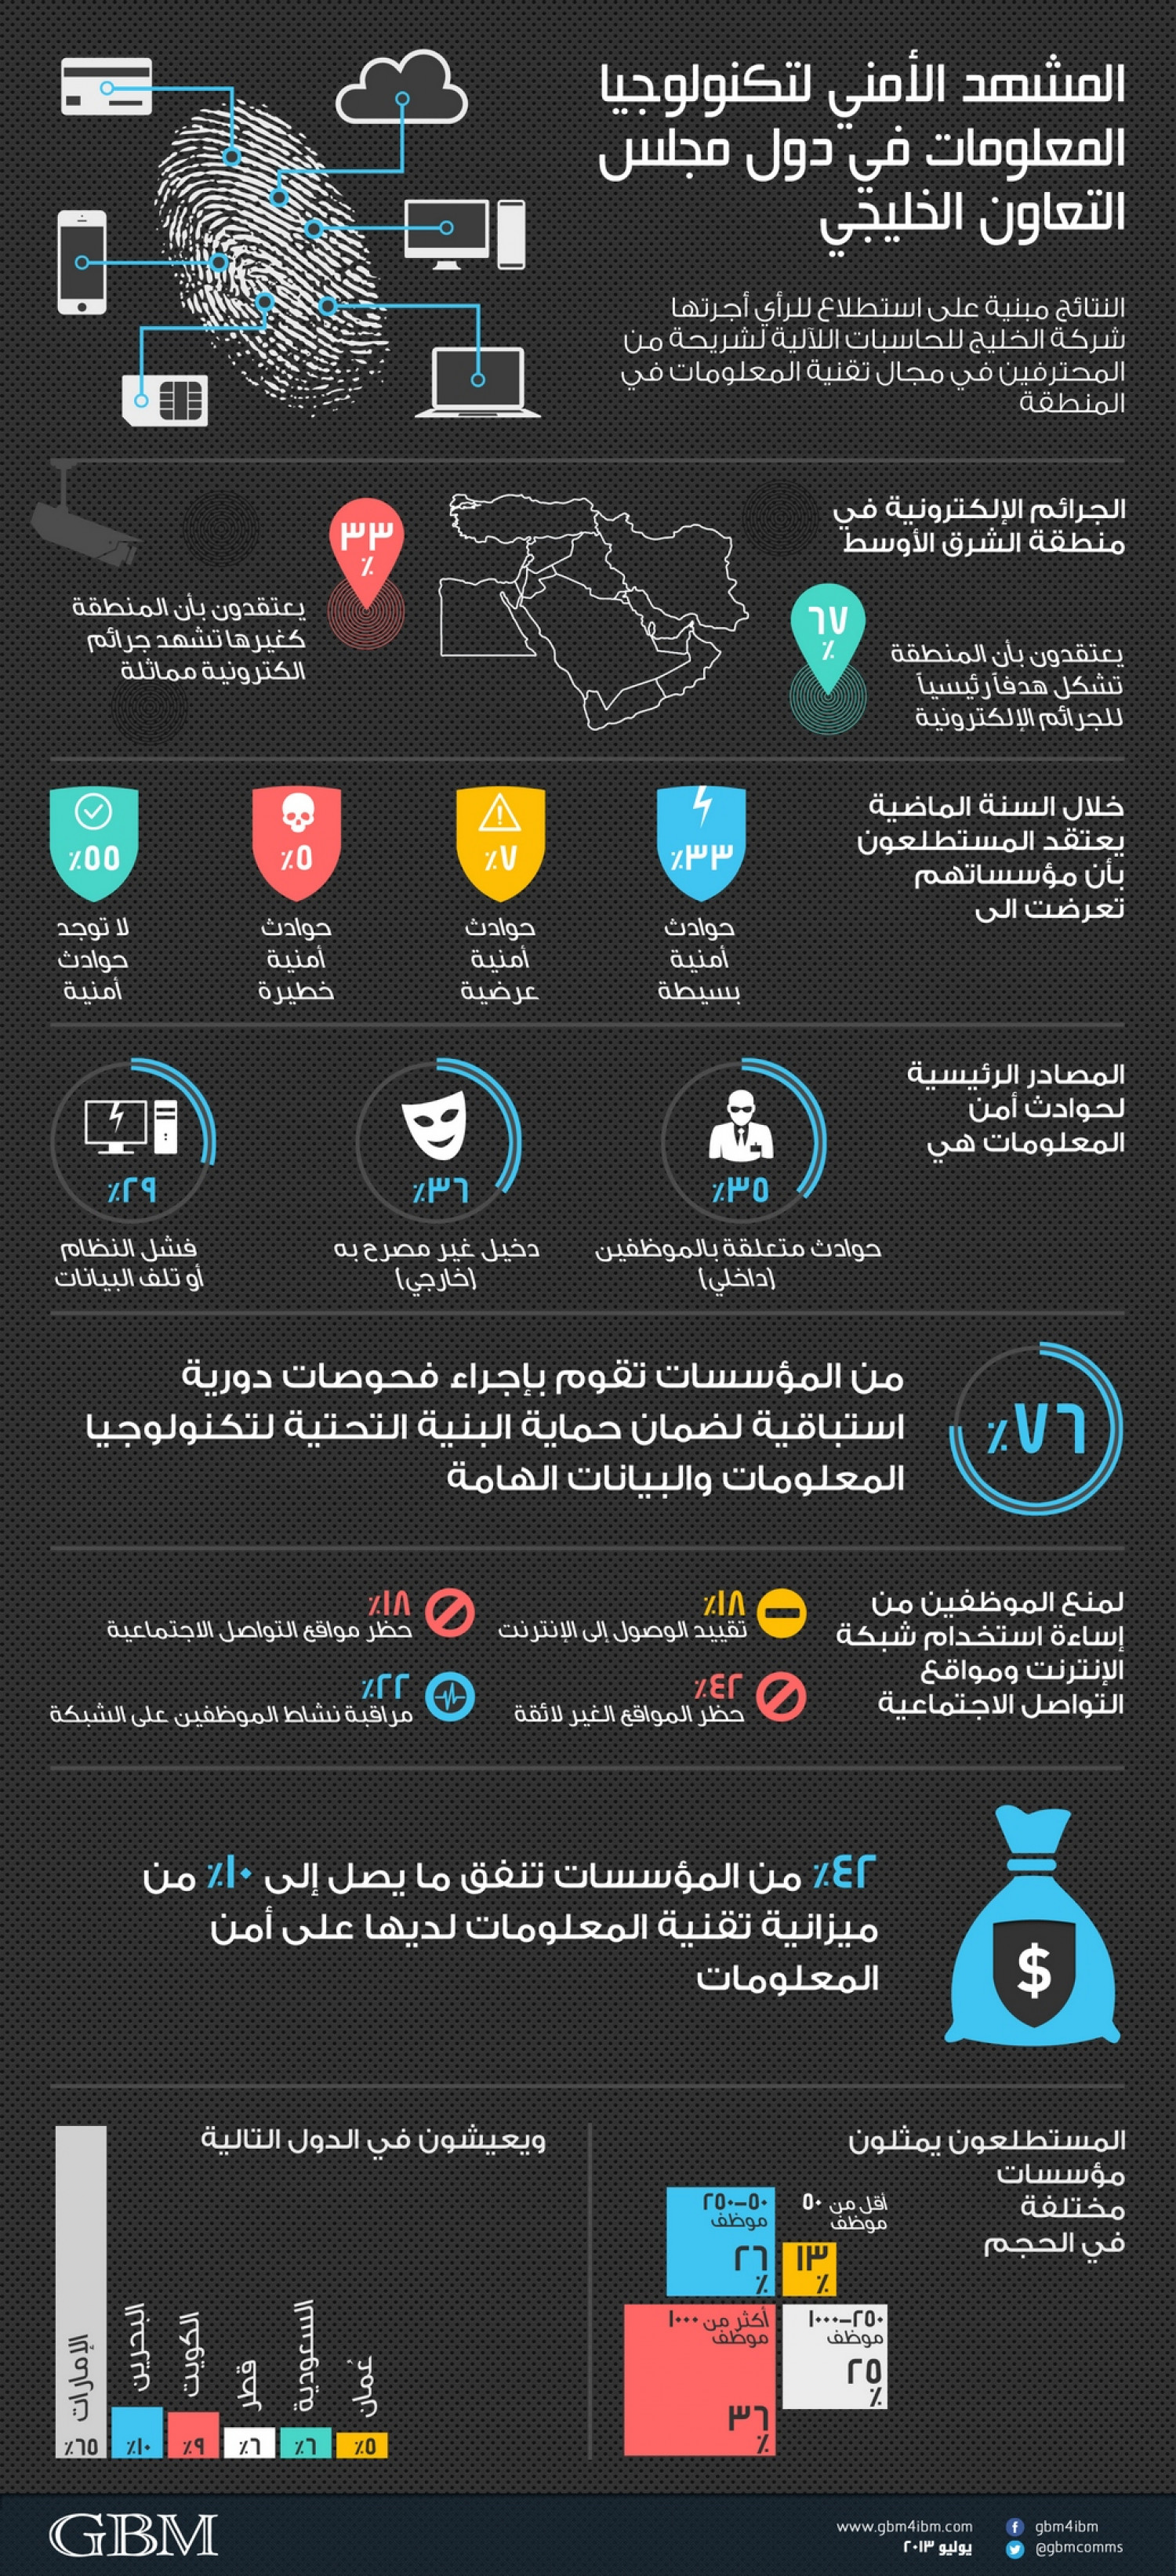 IT Security Landscape in the GCC - Arabic Infographic